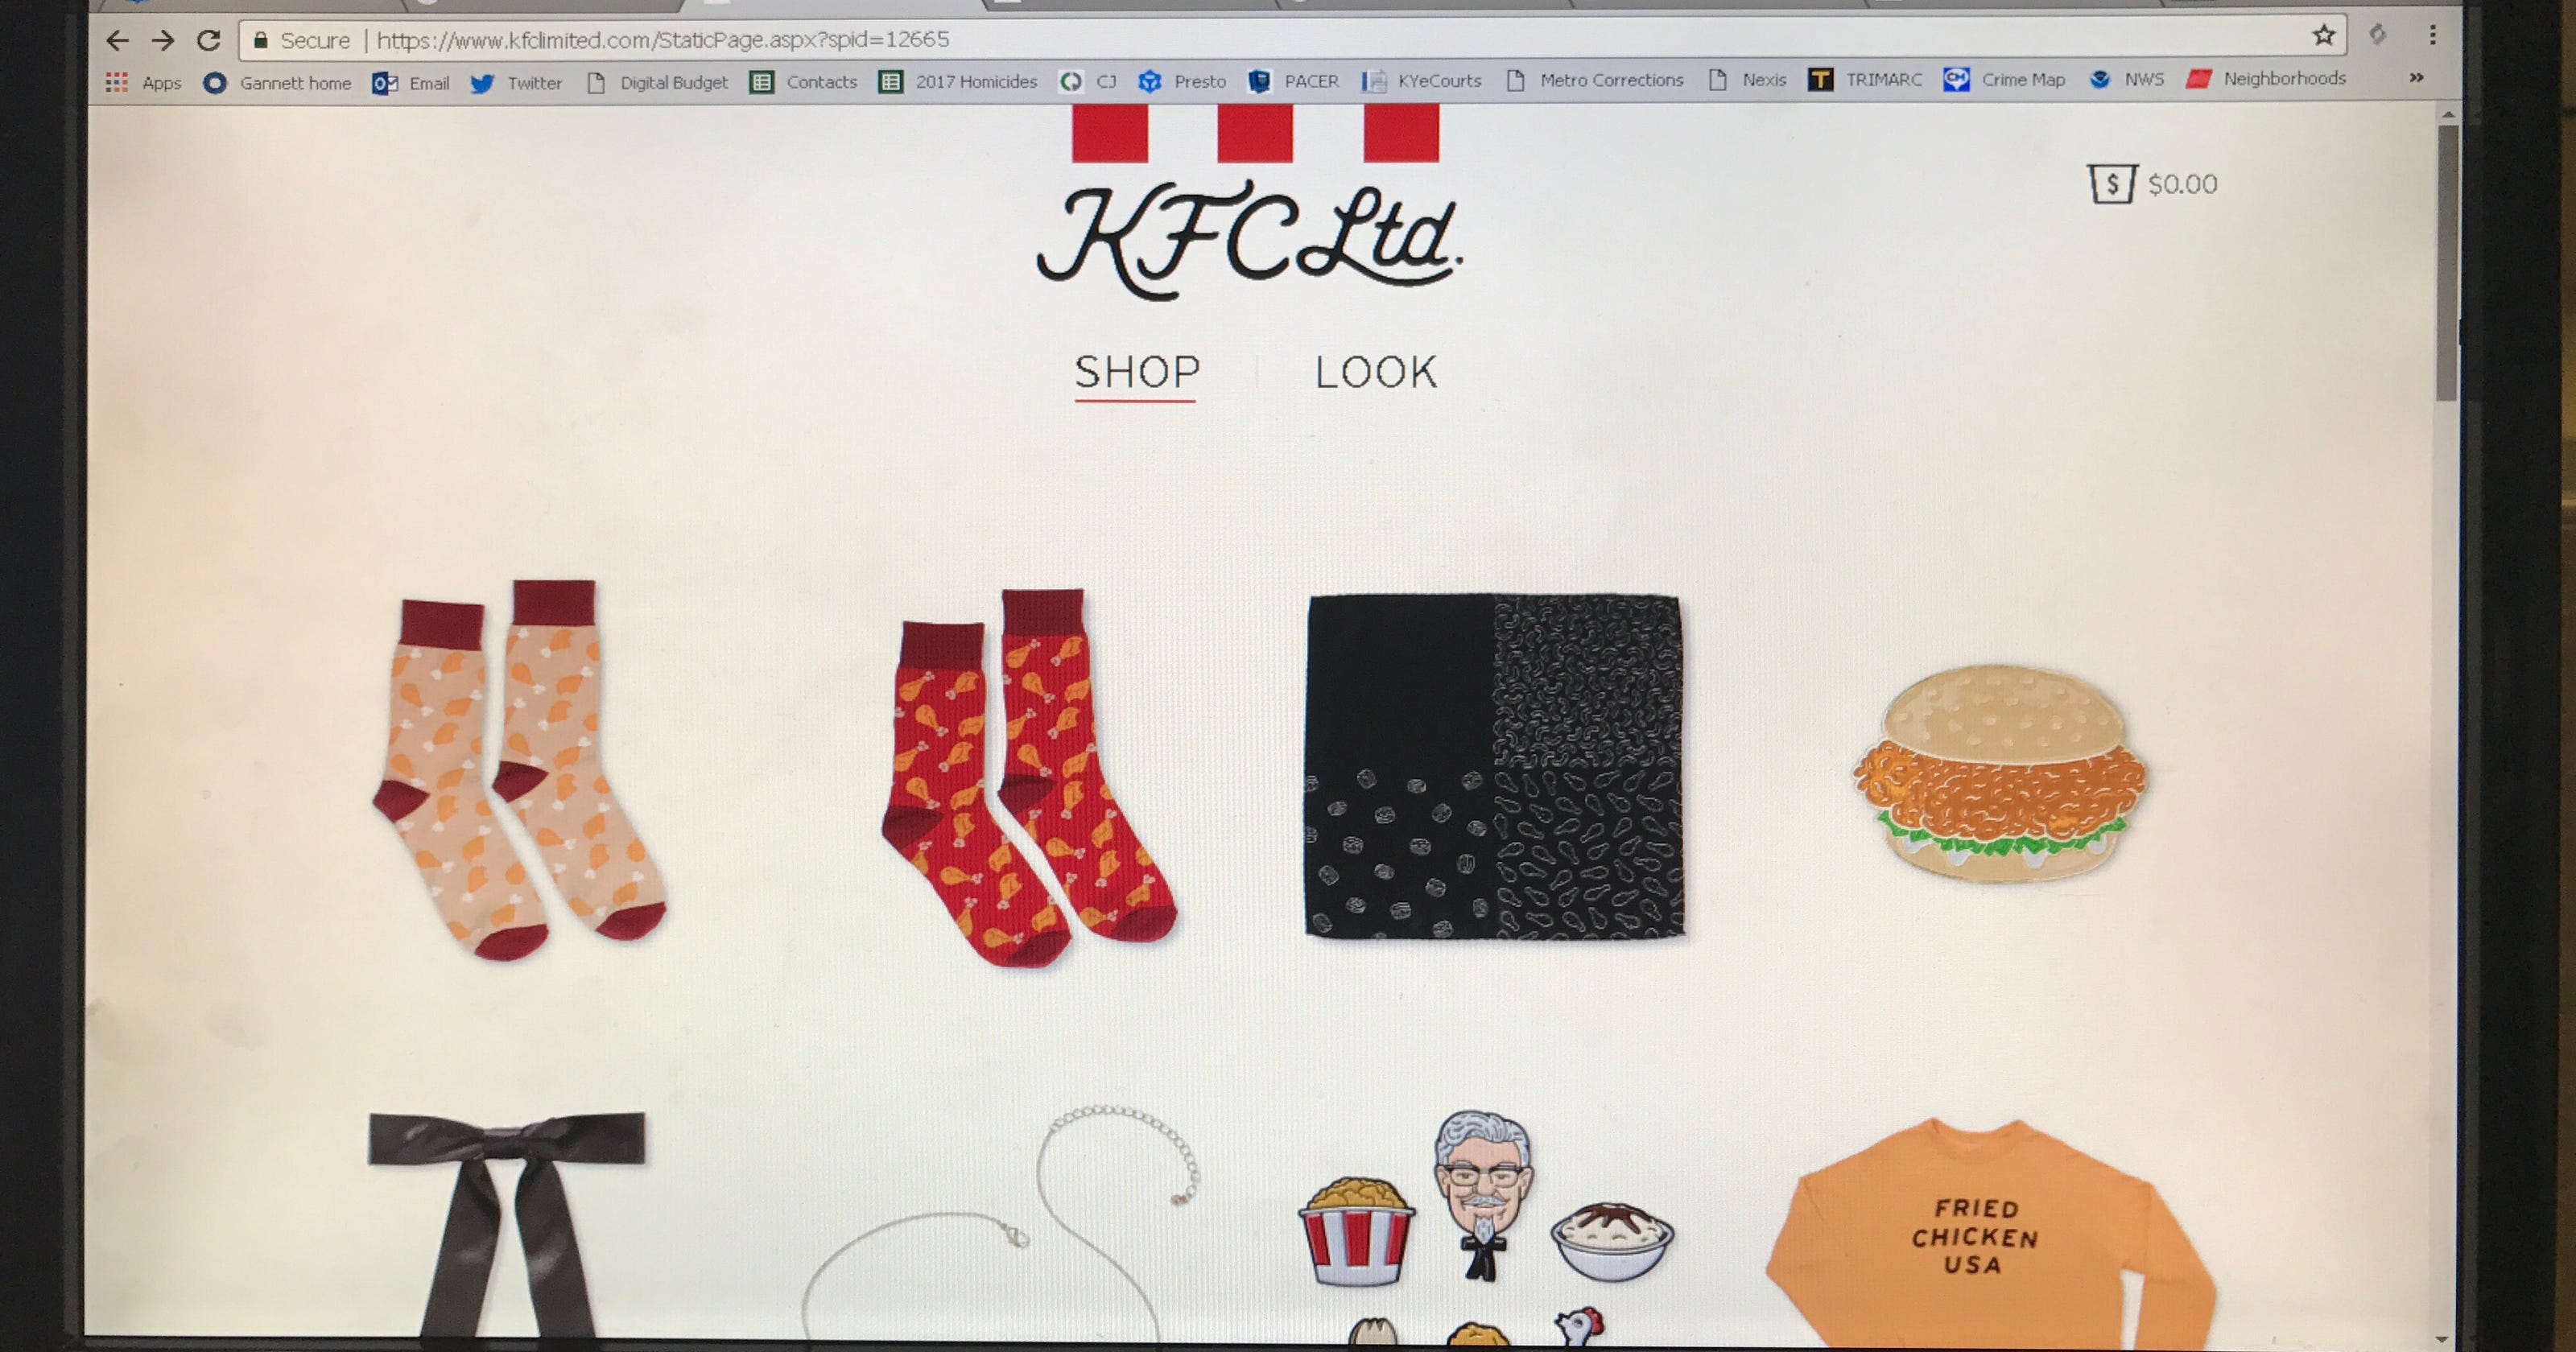 KFC cooks up a new line of merchandise